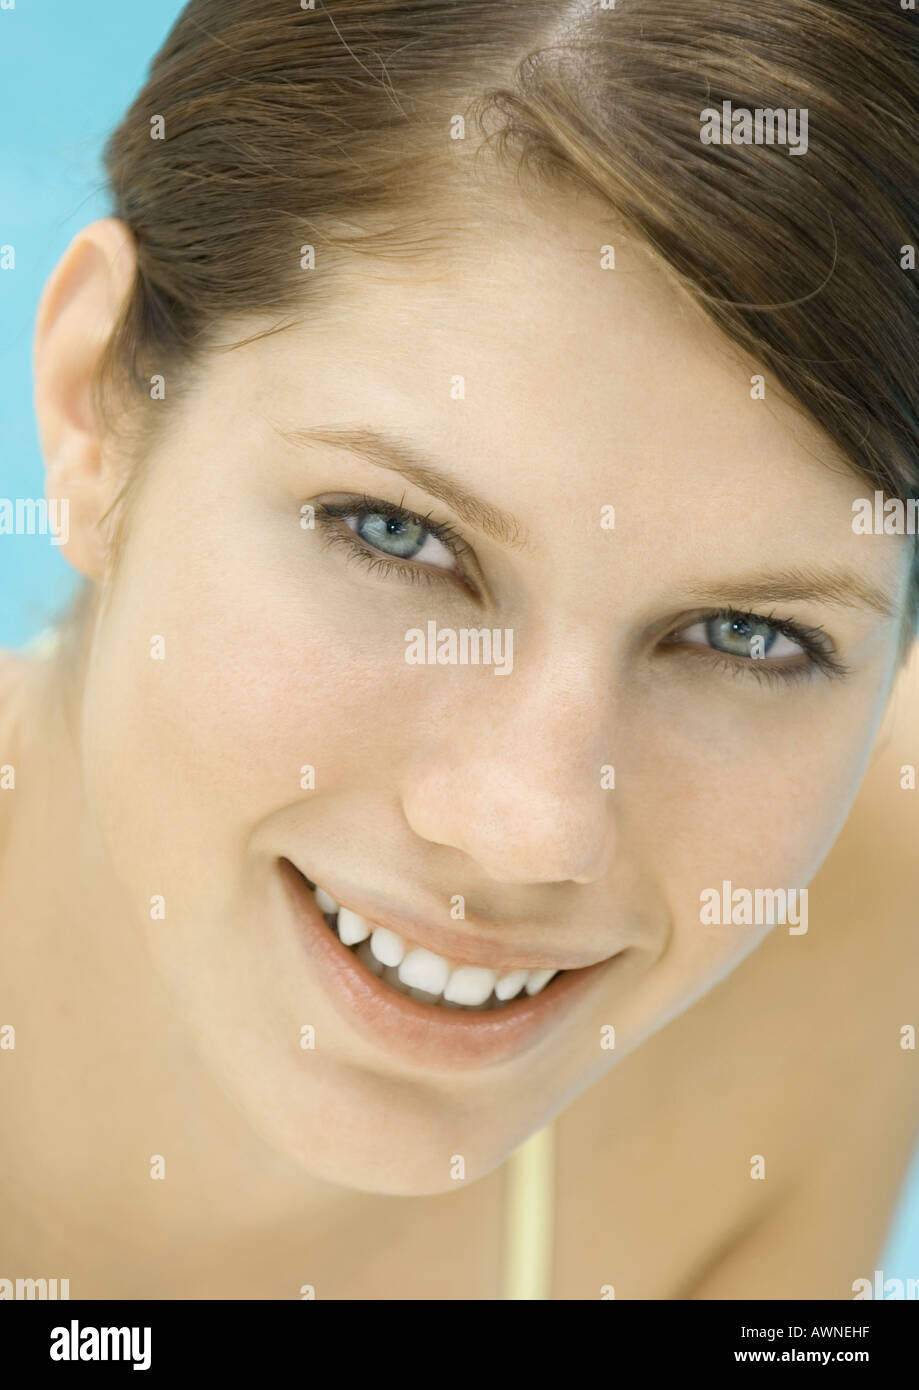 Young woman by pool, smiling, portrait - Stock Image